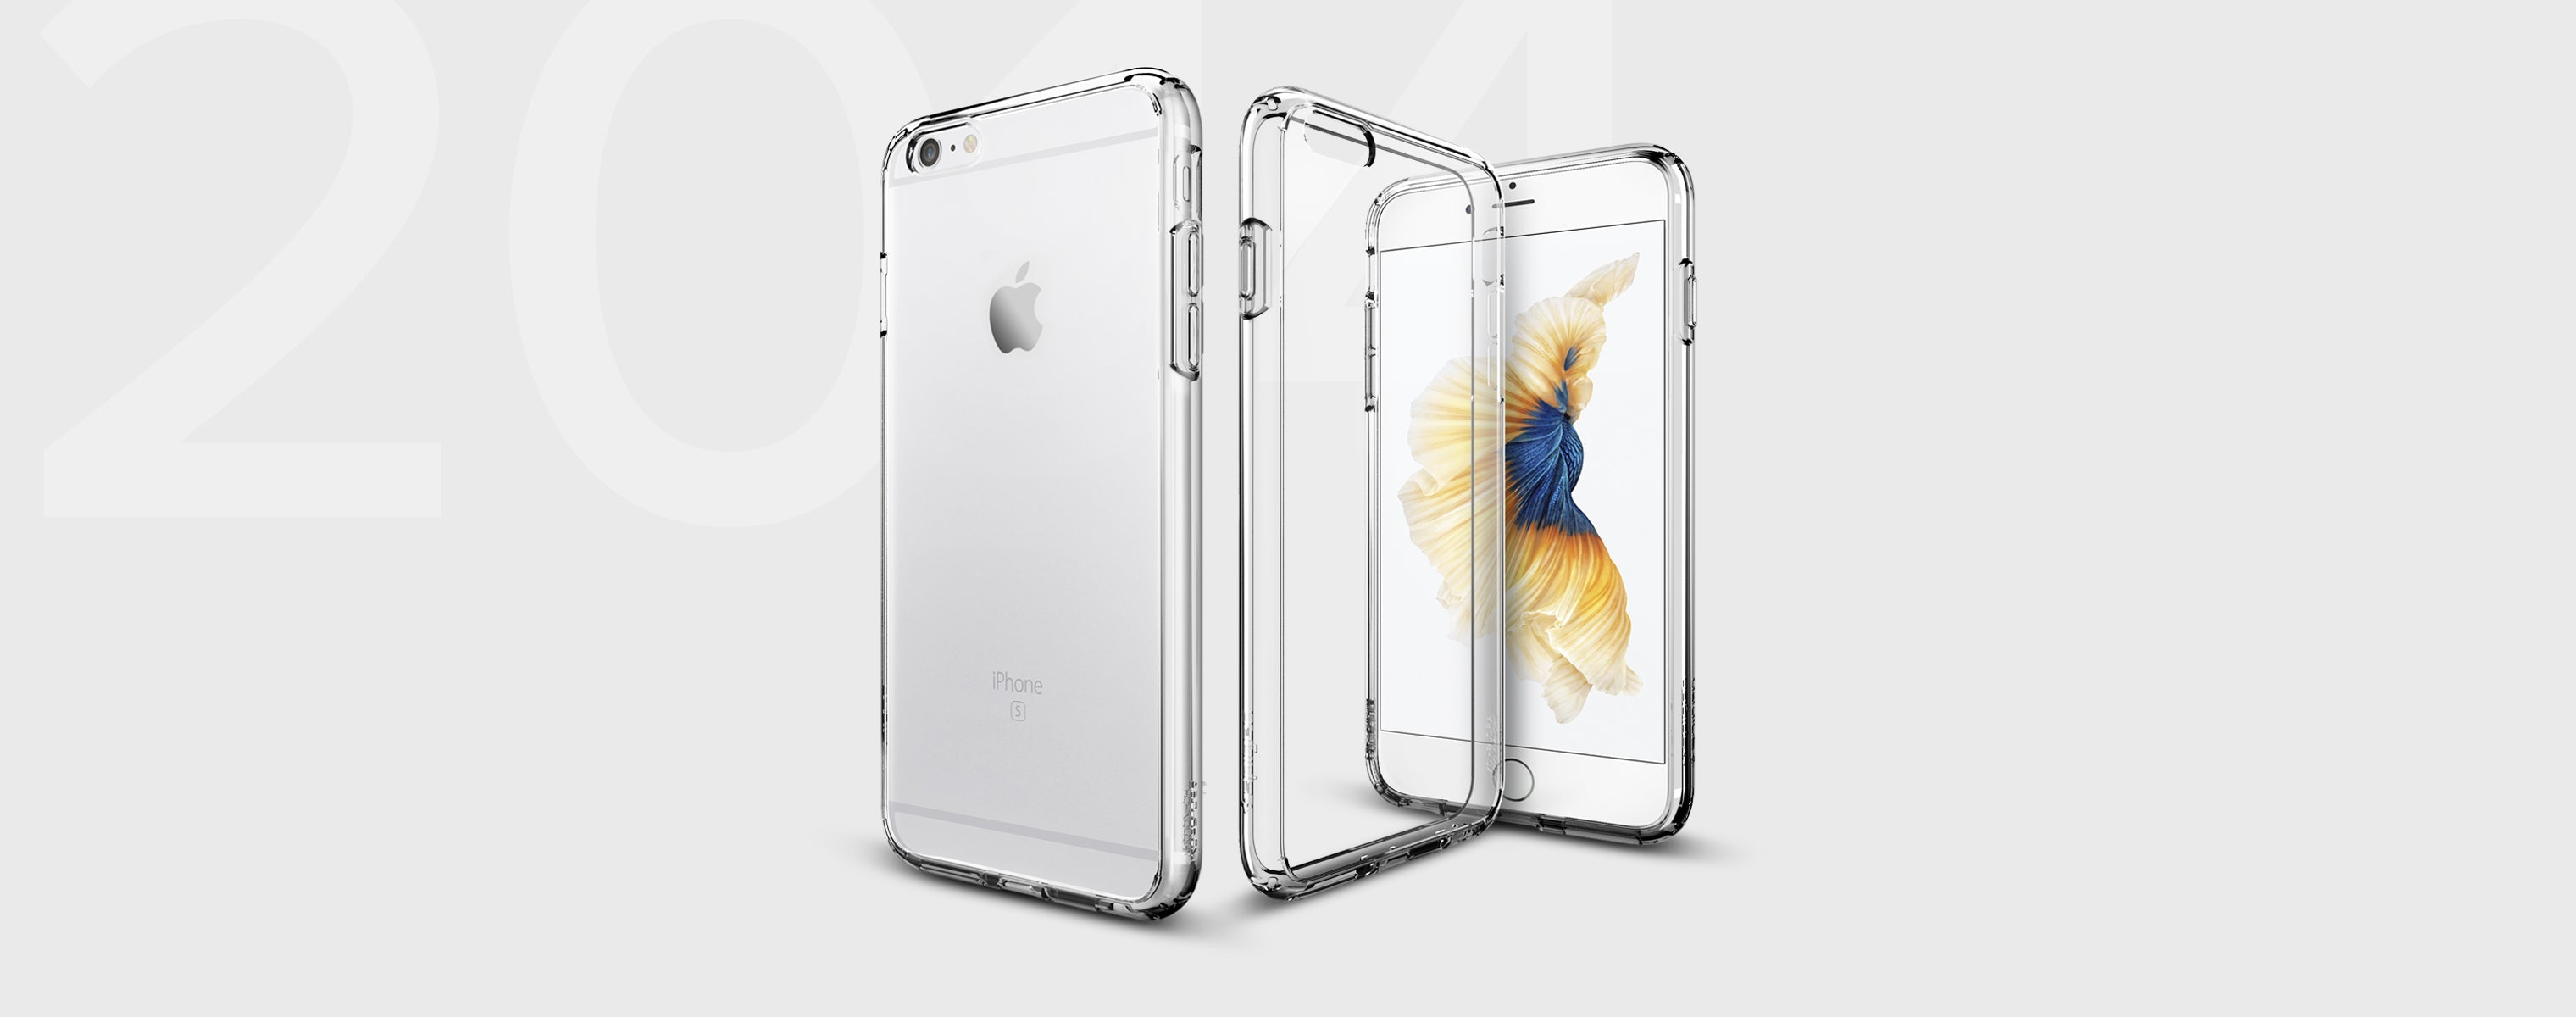 Ultra hybrid clear case on an iPhone showing both the front and back